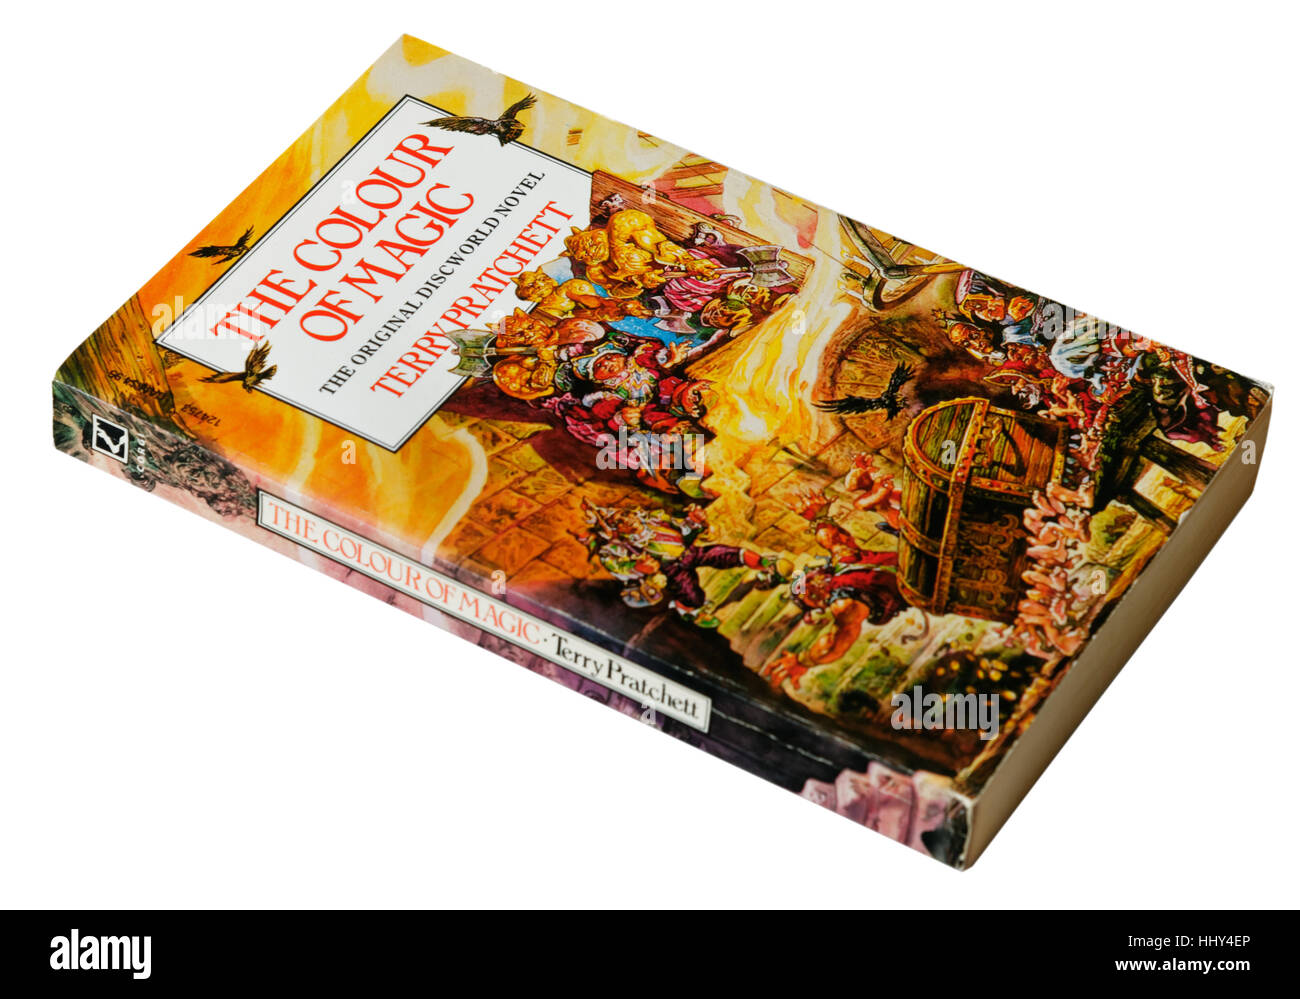 The Colour Of Magic A Discworld Novel By Terry Pratchett Stock Photo Alamy